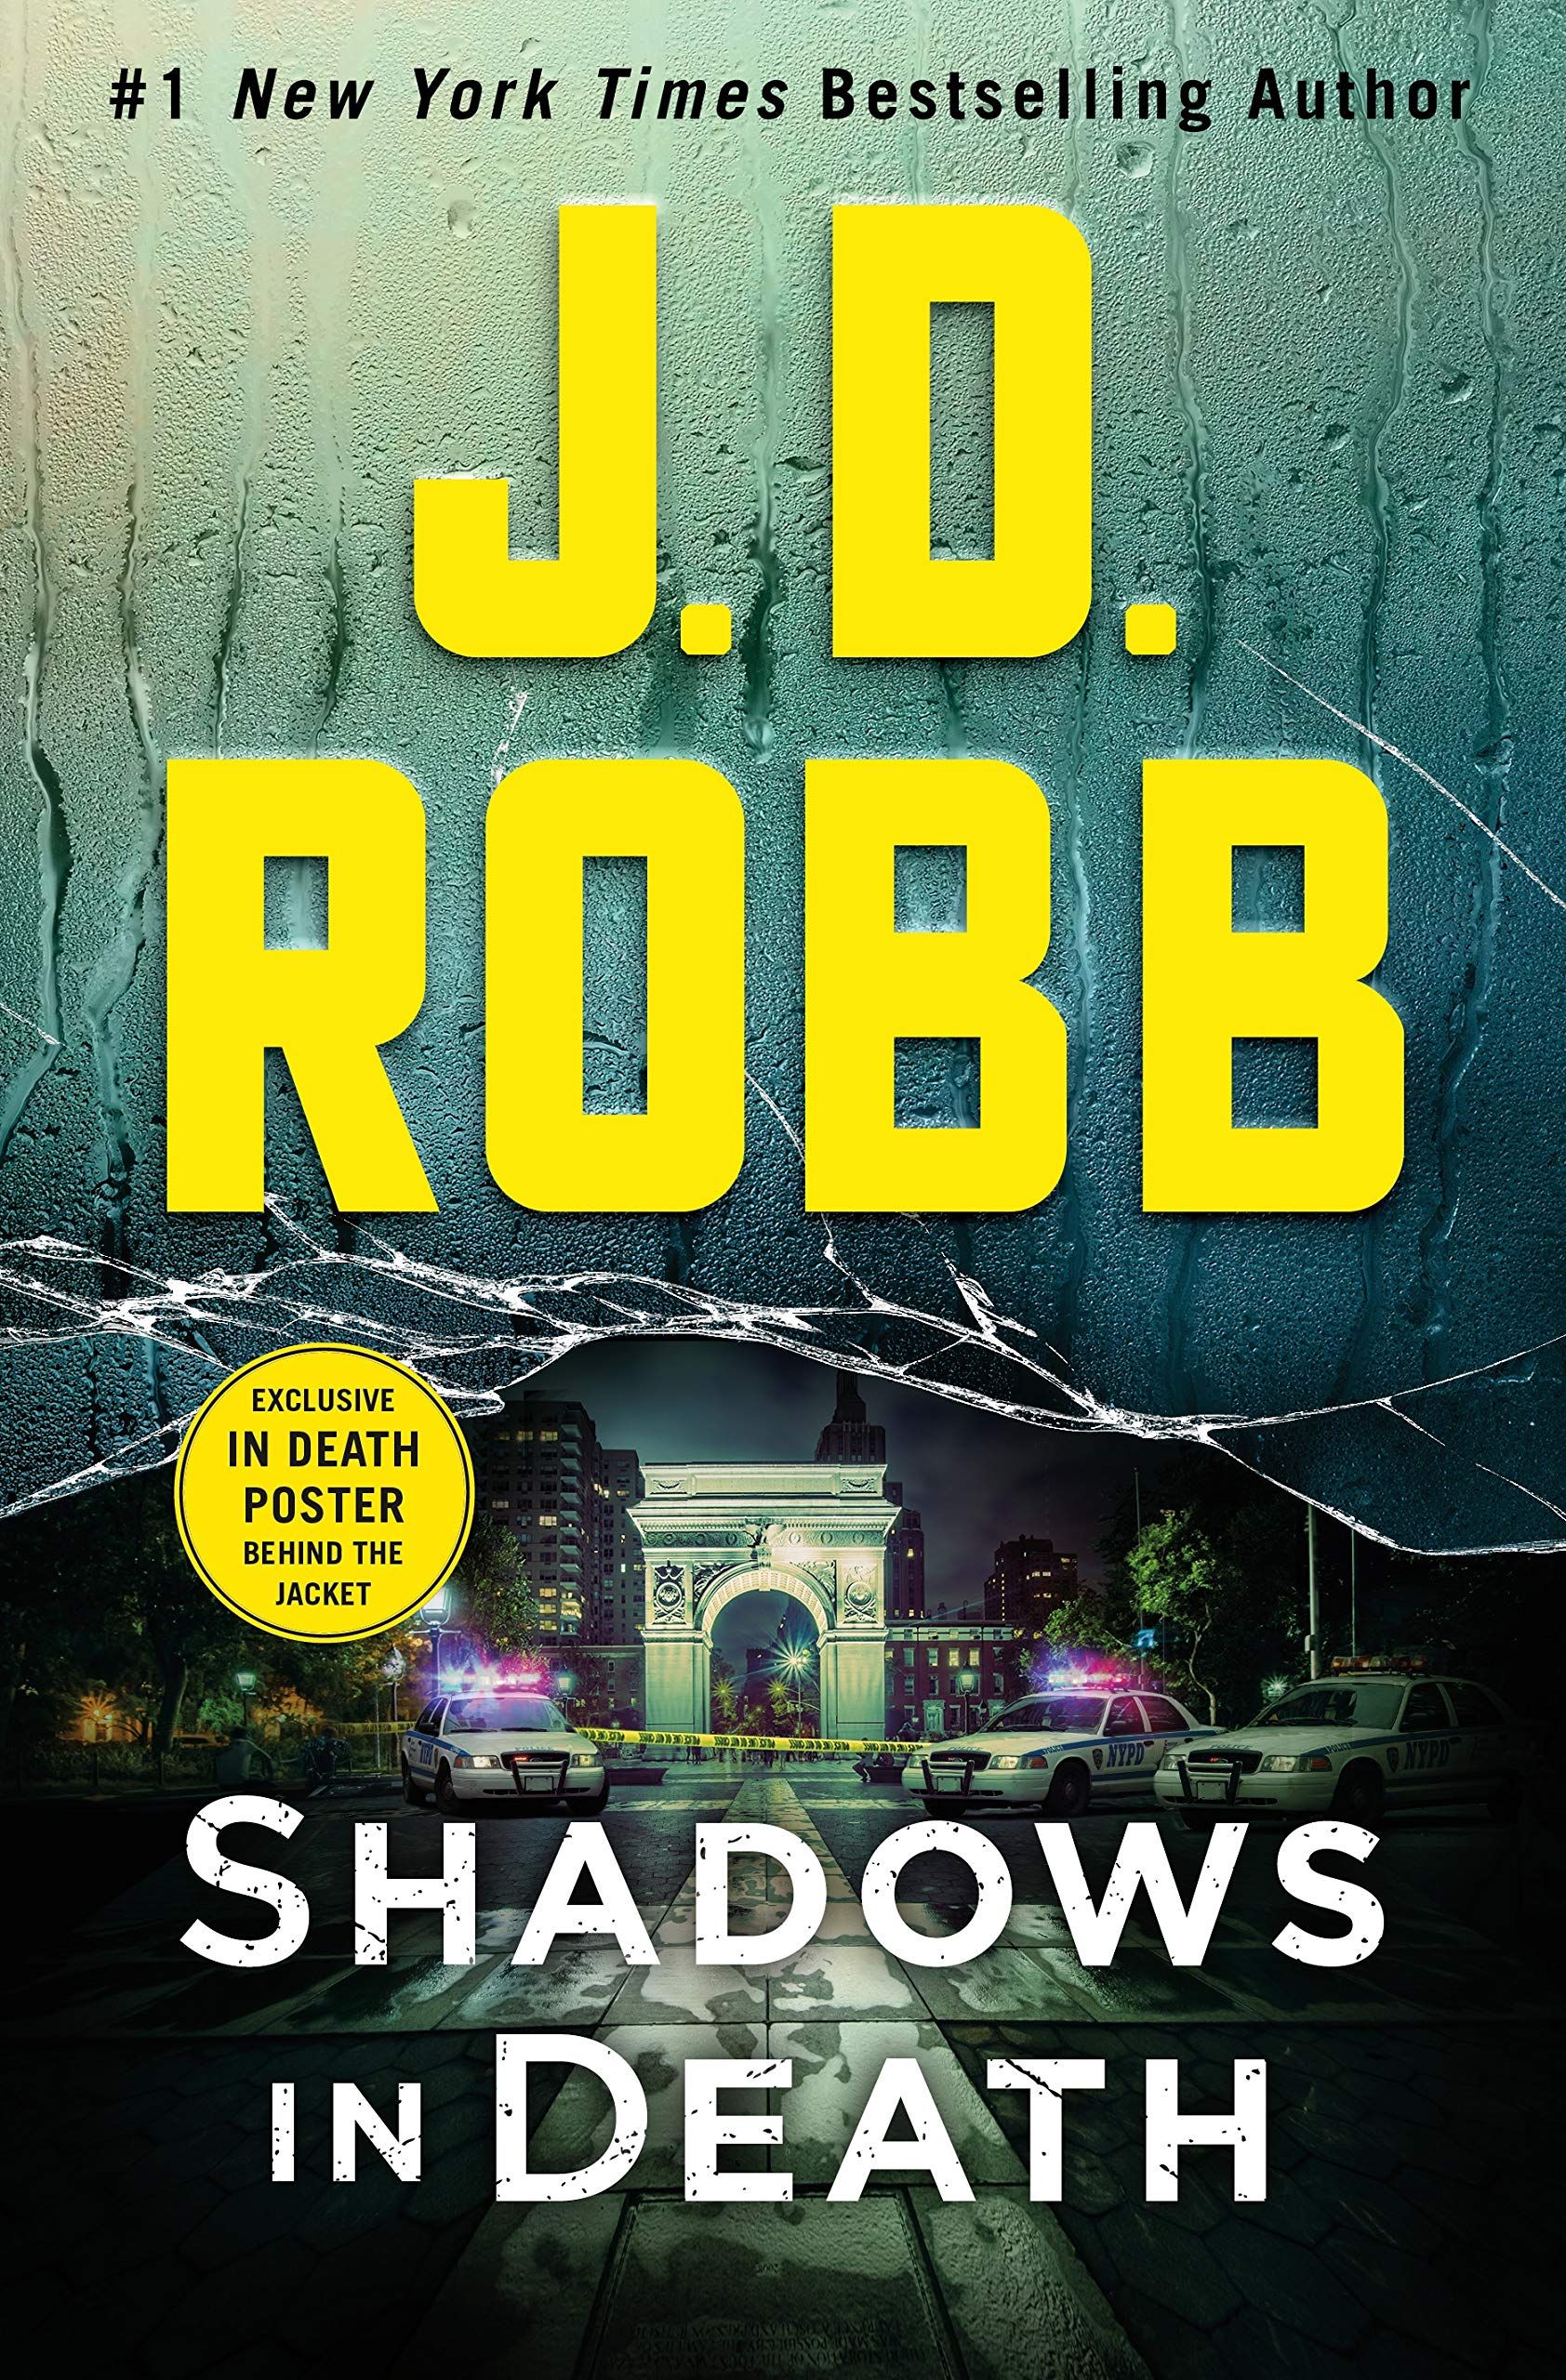 Cover image of Shadows in Death by J. D. Robb